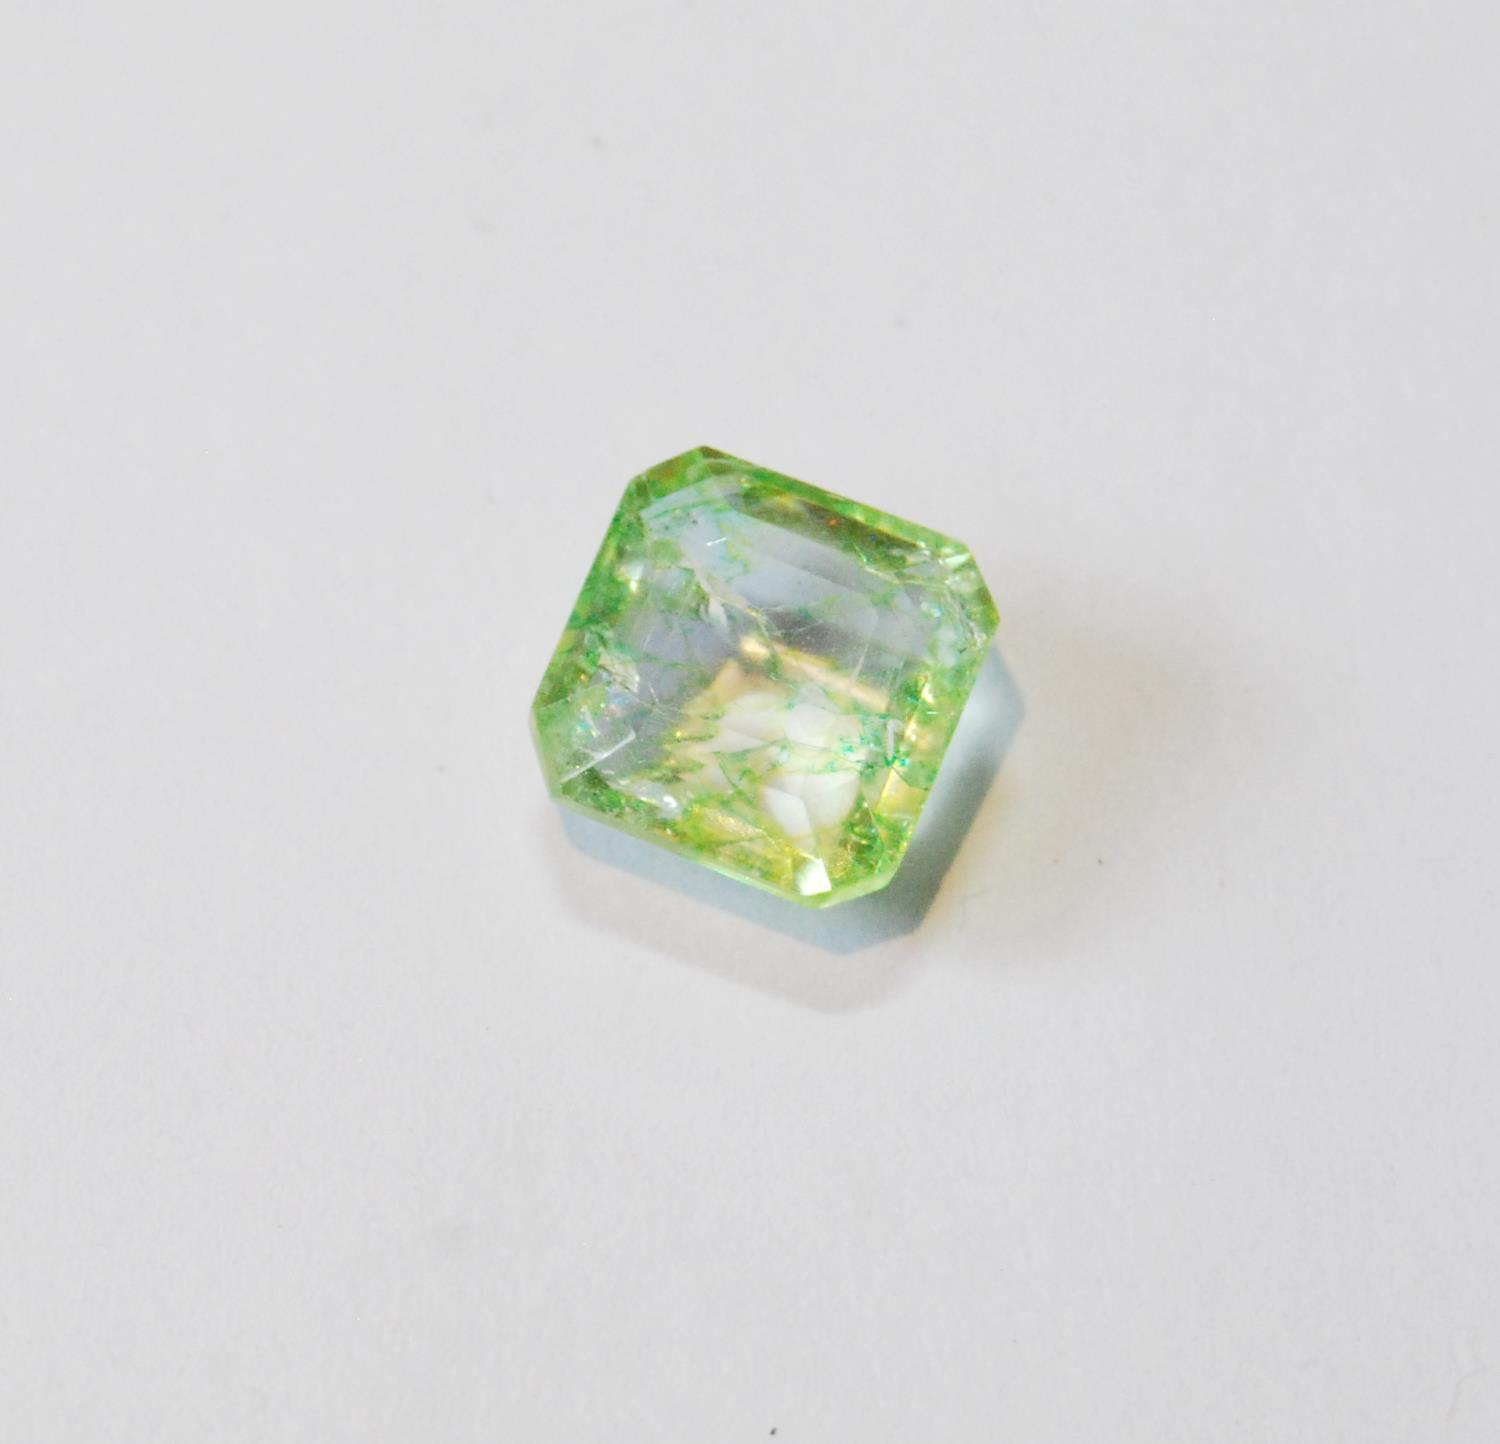 Unmounted square emerald with NGL report, given as 8.65ct, 12.24mm x 7.26mm, treated, of almost lime